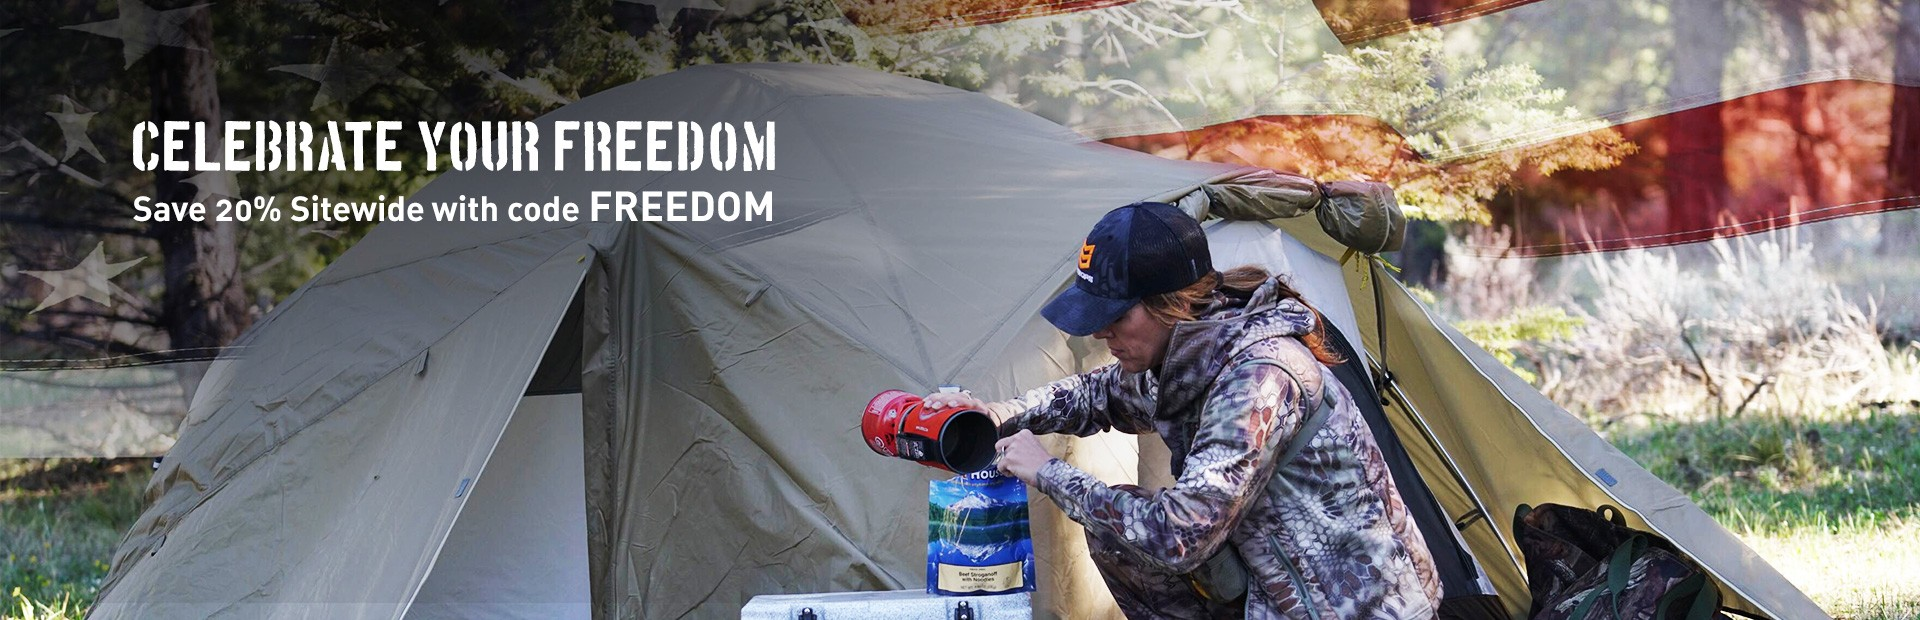 Save 20% Sitewide With Code FREEDOM